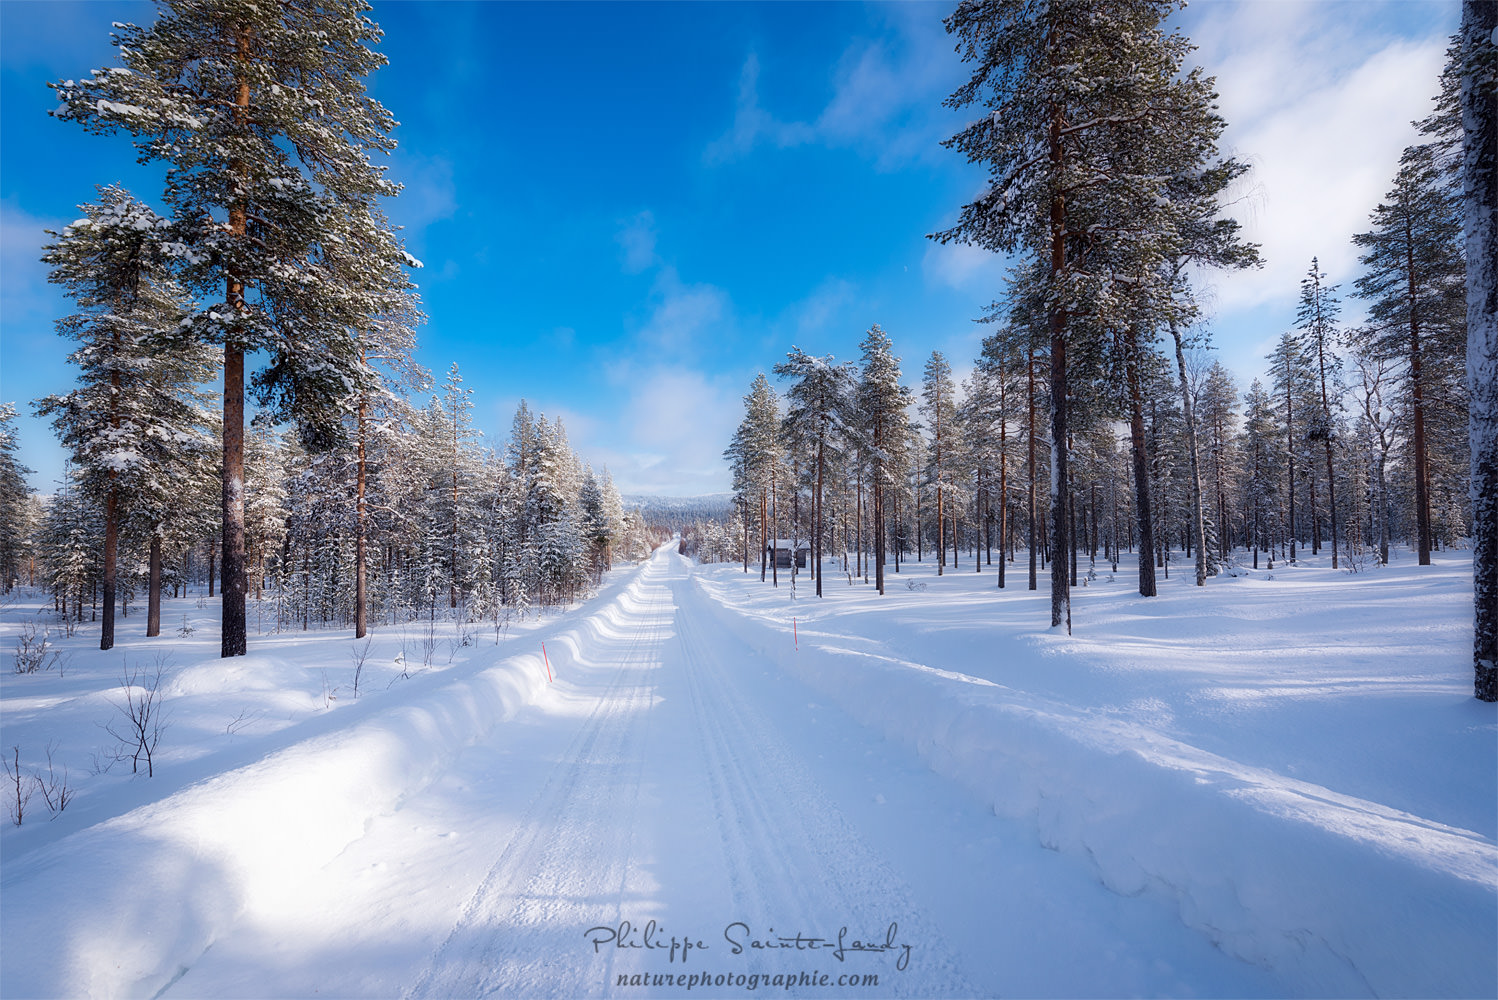 On the roads of Finland